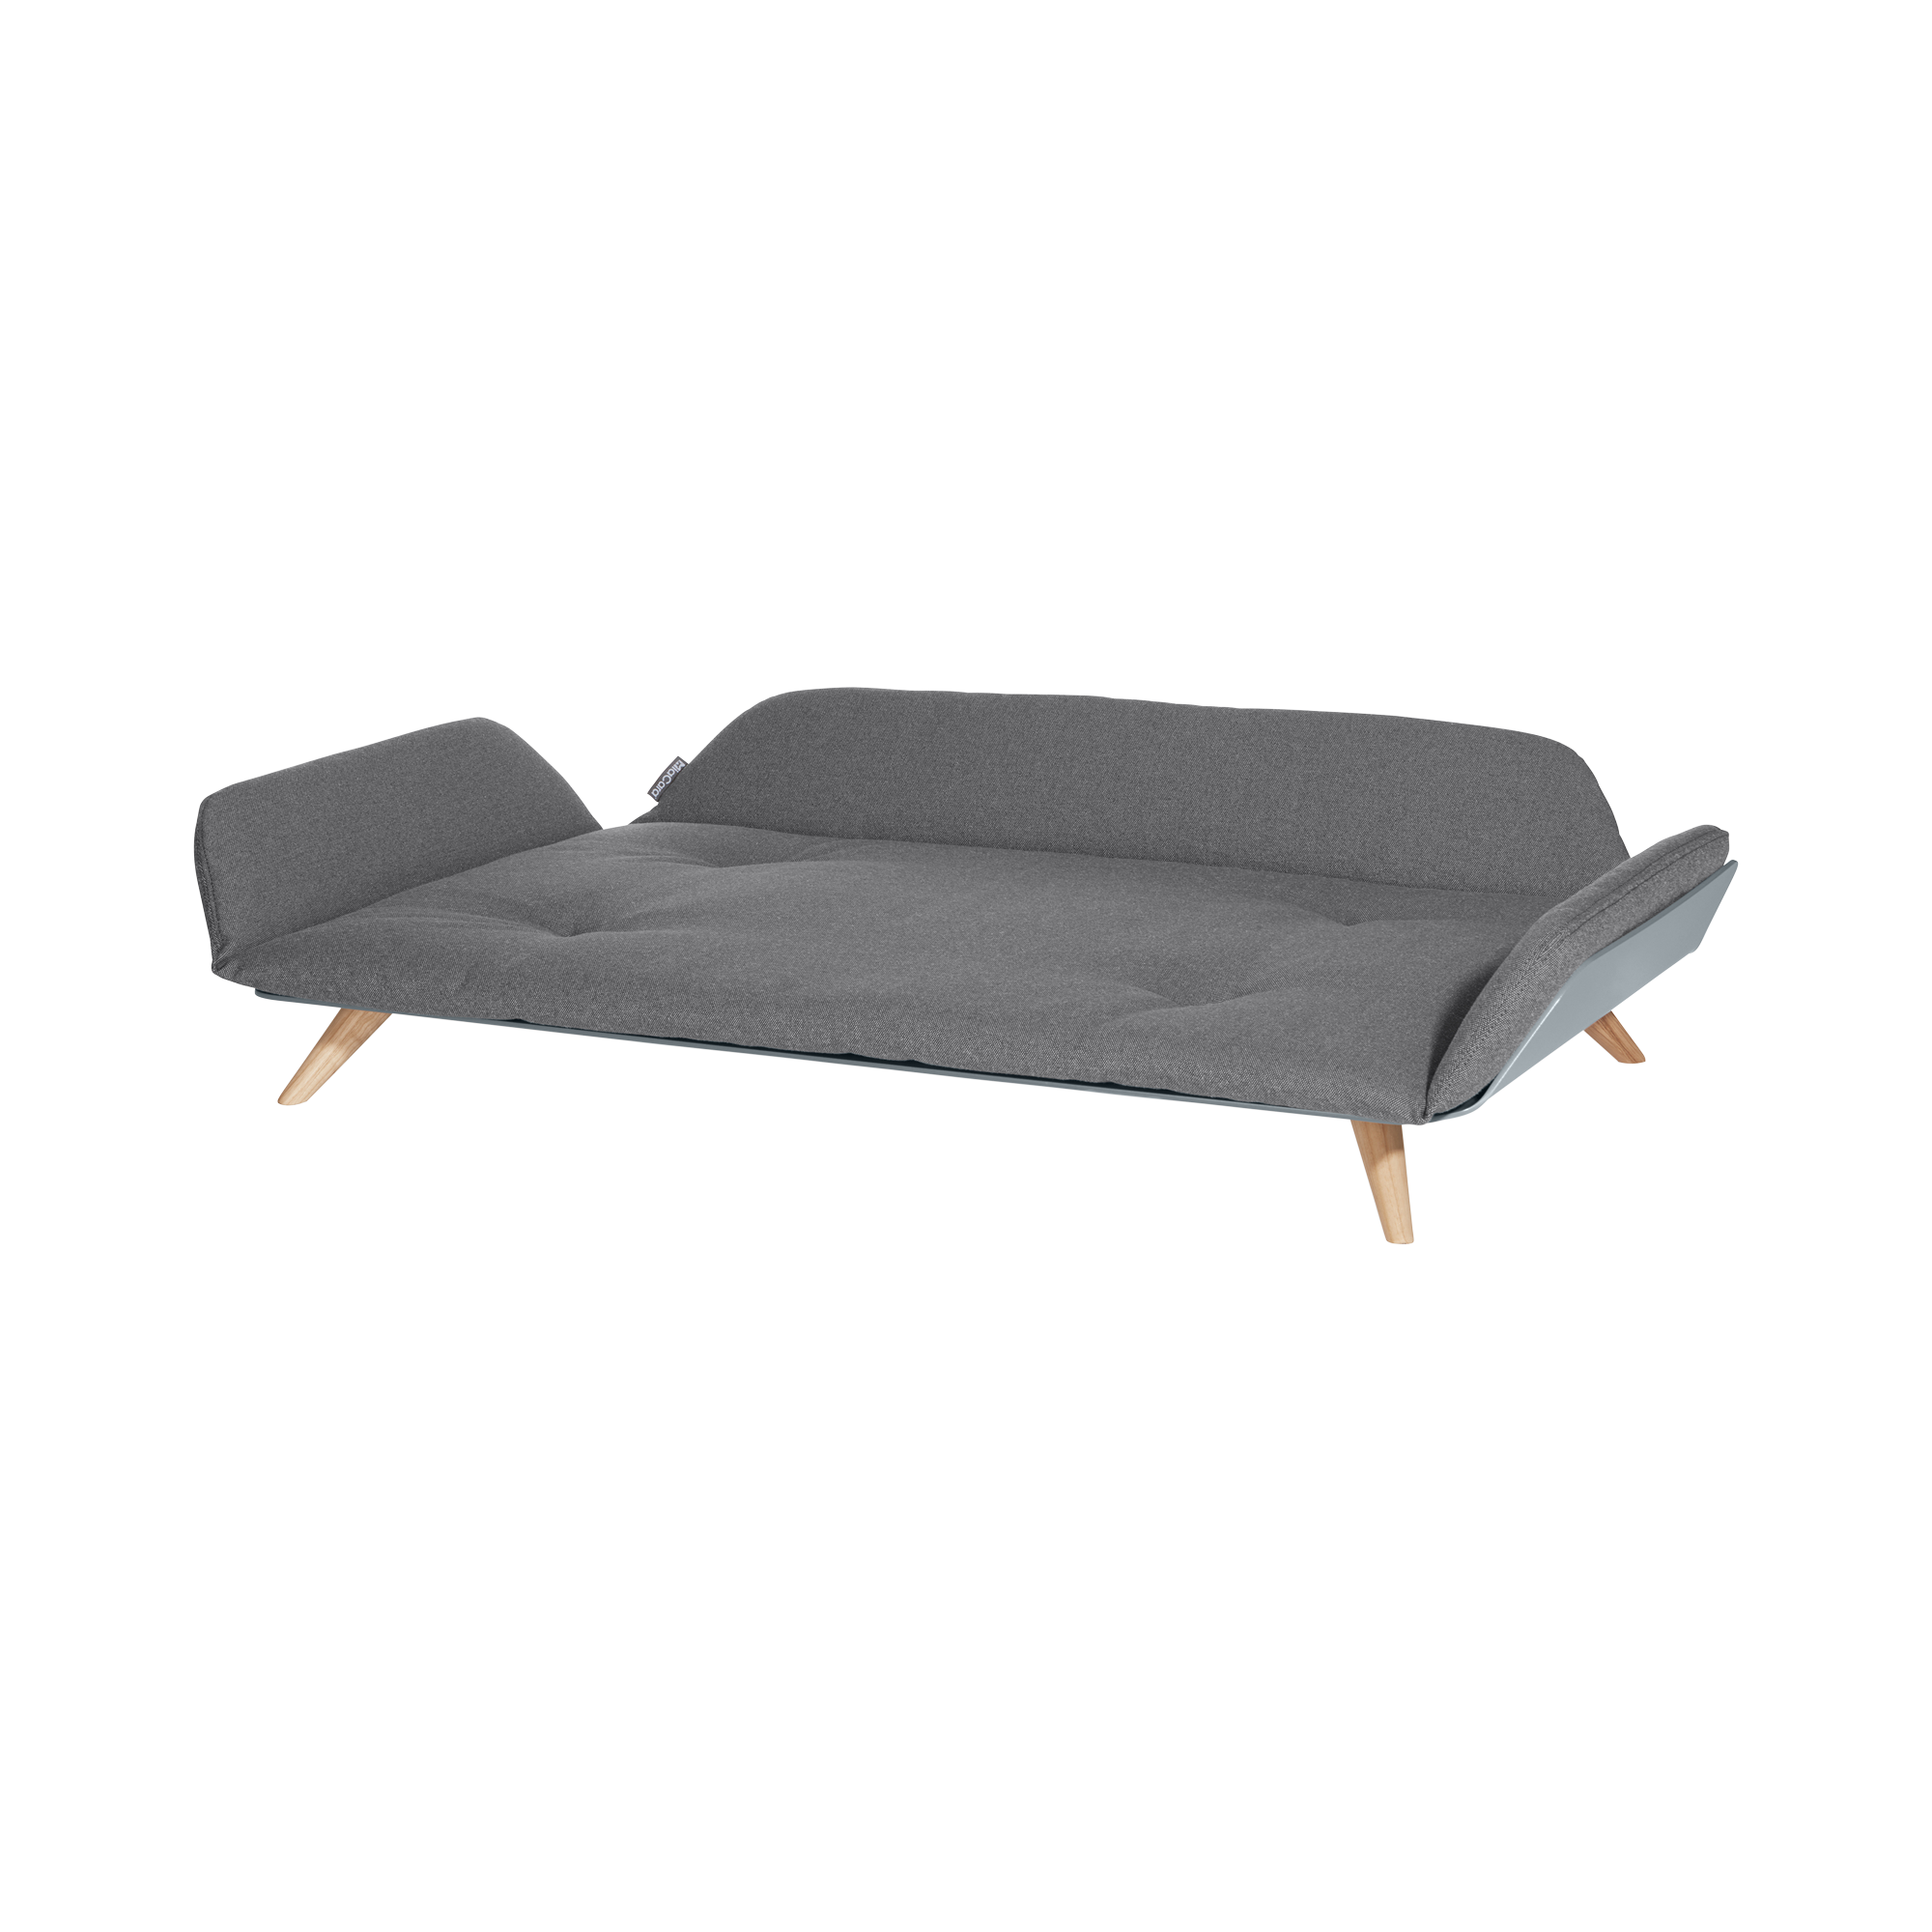 miacara-dog-bed-daybed-1